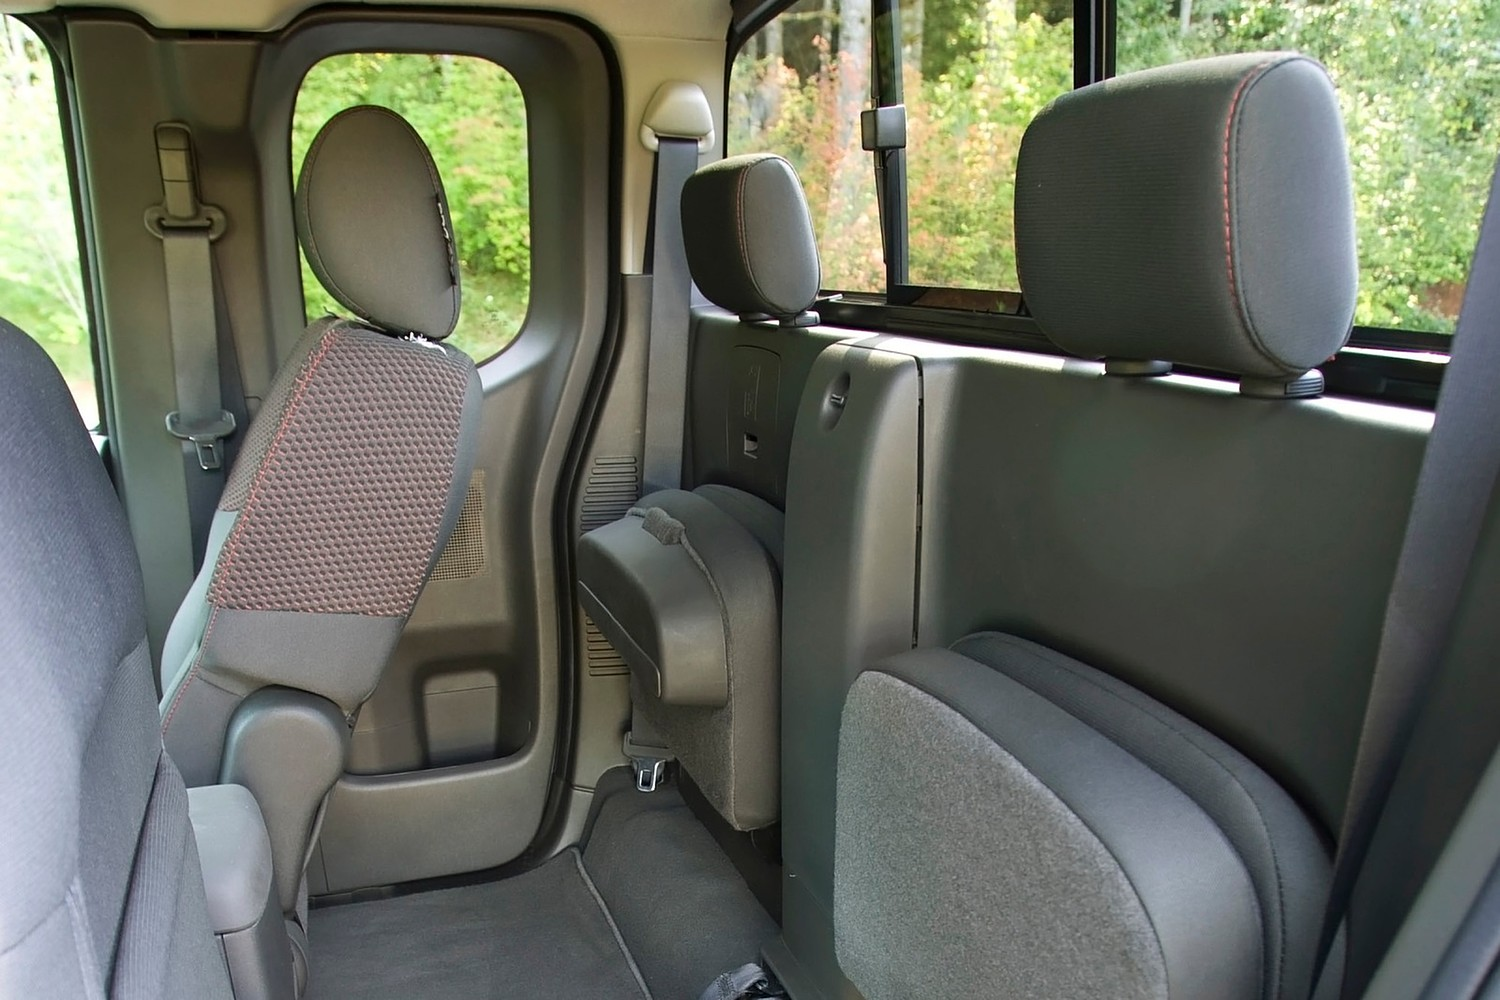 Nissan Frontier PRO-4X Extended Cab Pickup Rear Interior (2013 model year shown)